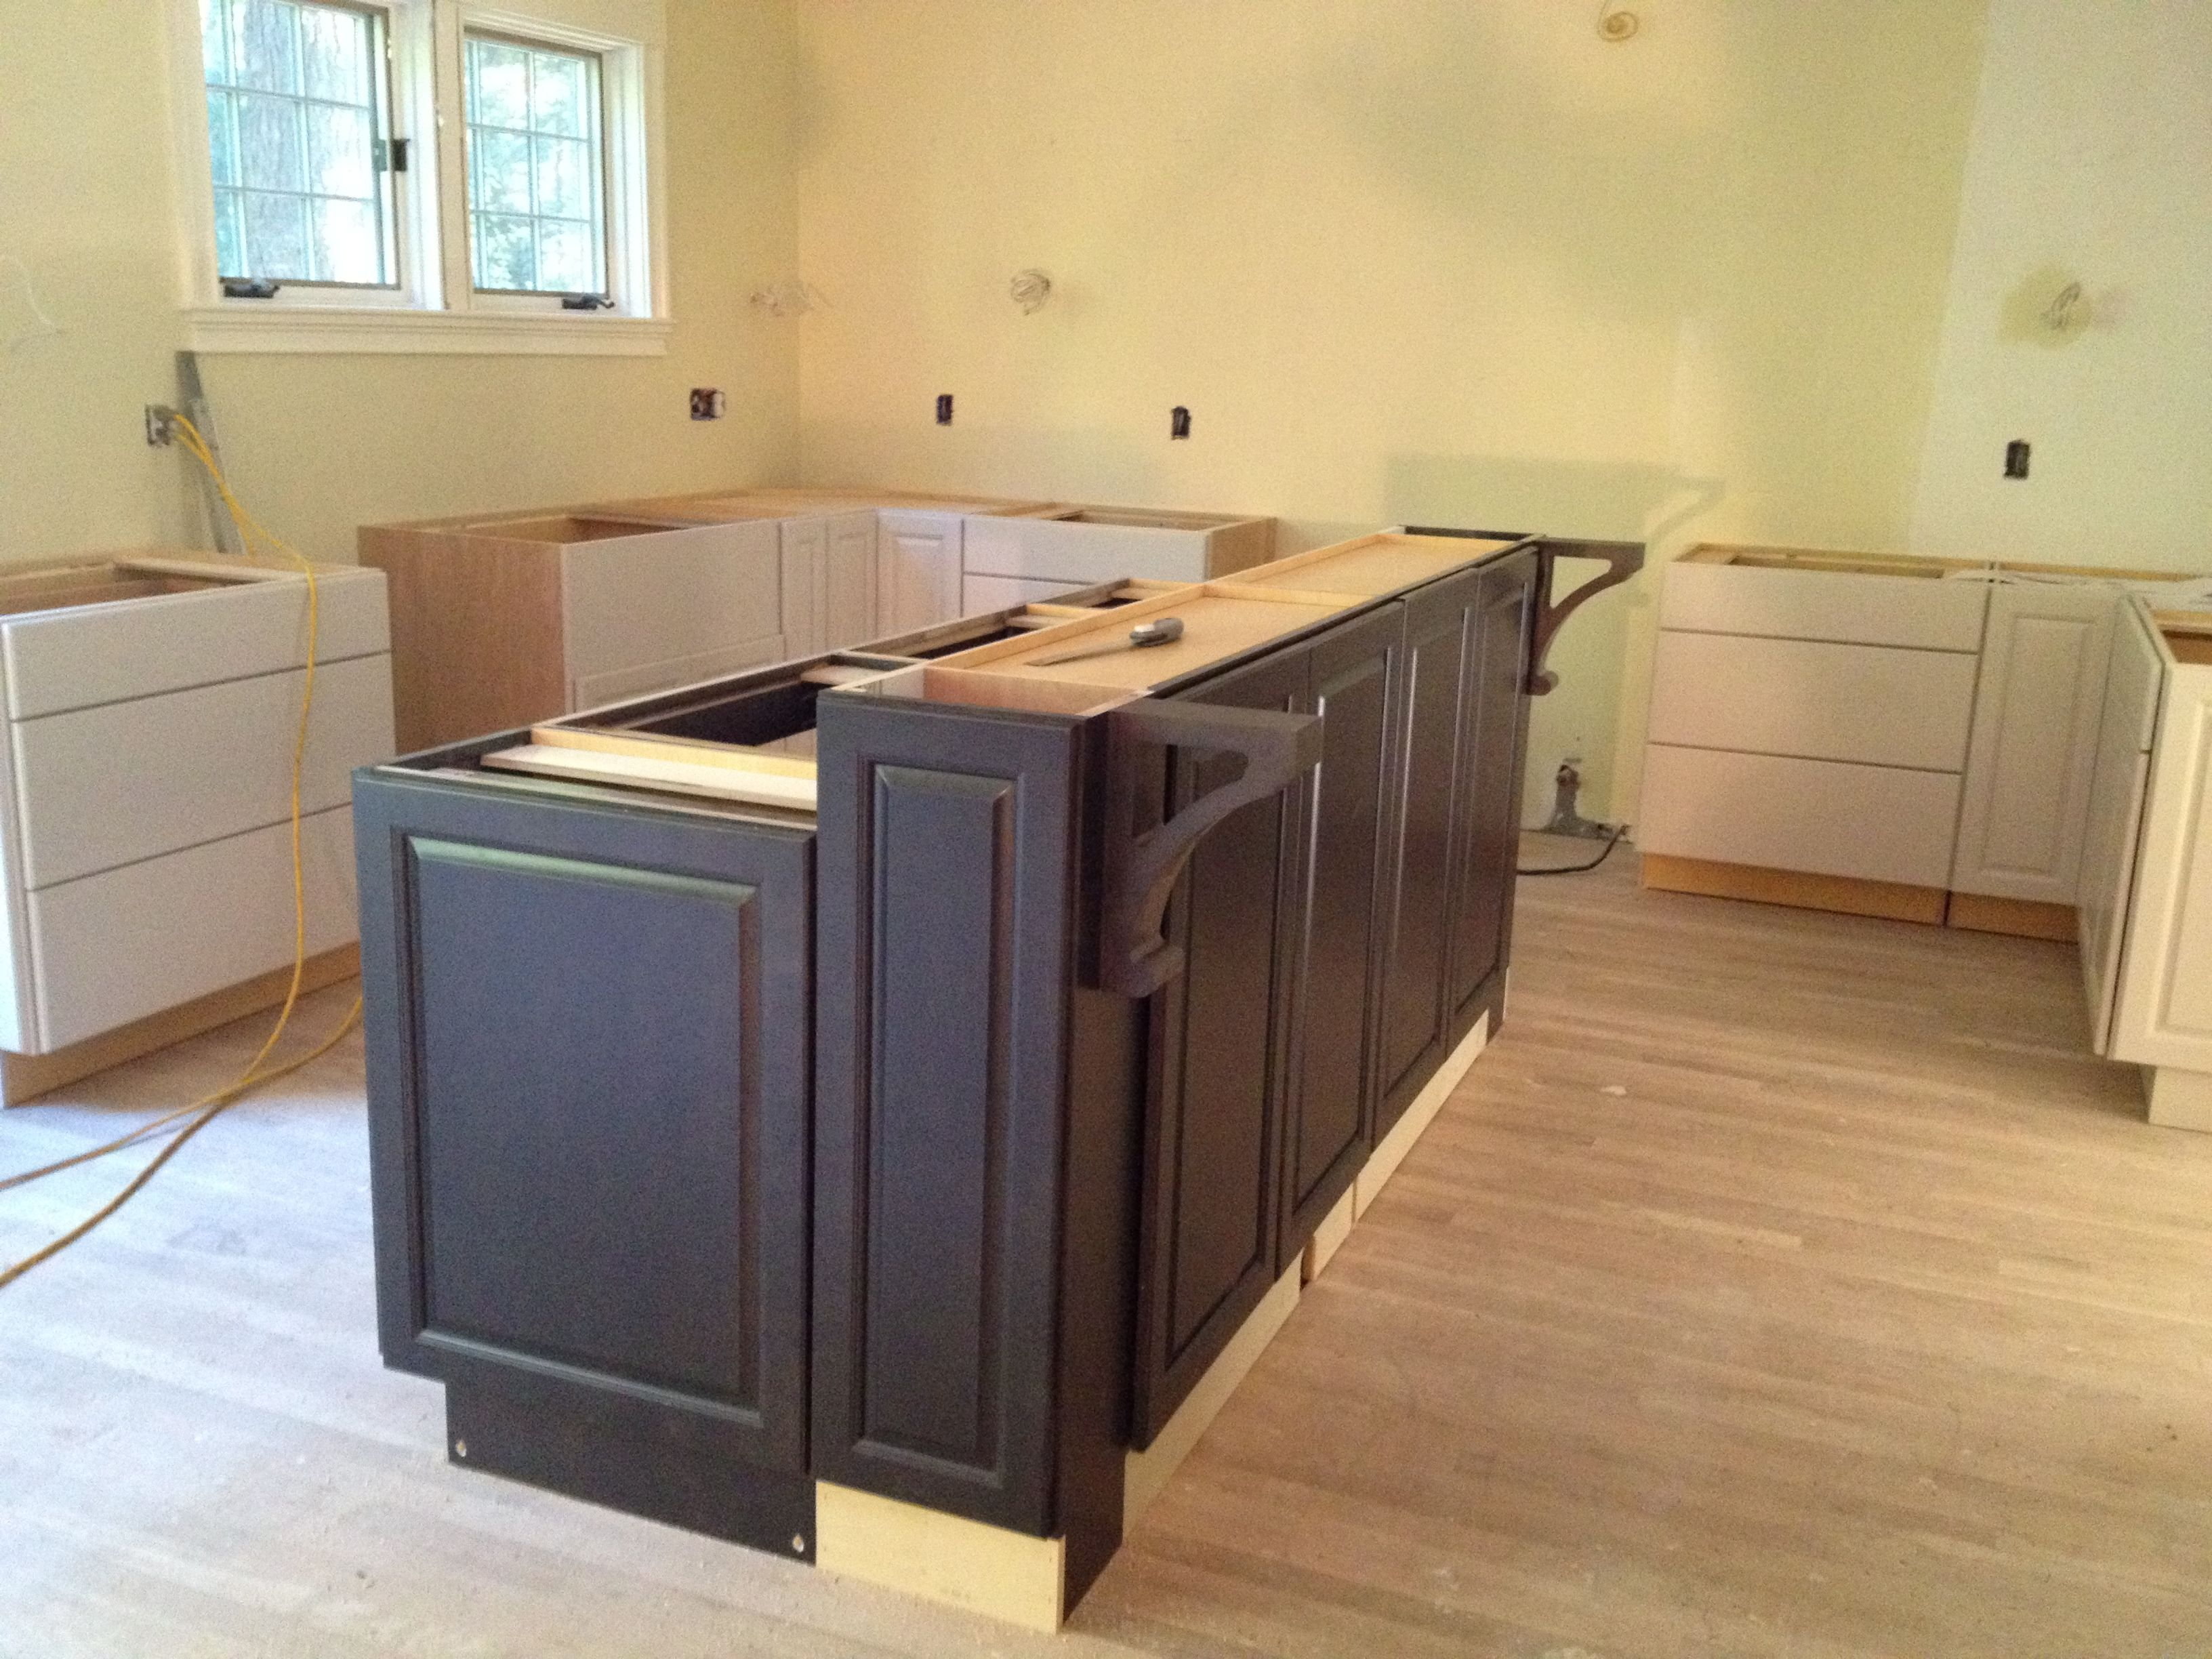 Lovely How To Build A Kitchen Island Part - 9: How To Build Kitchen Cabinet Doors, Building Kitchen Cabinets - R .